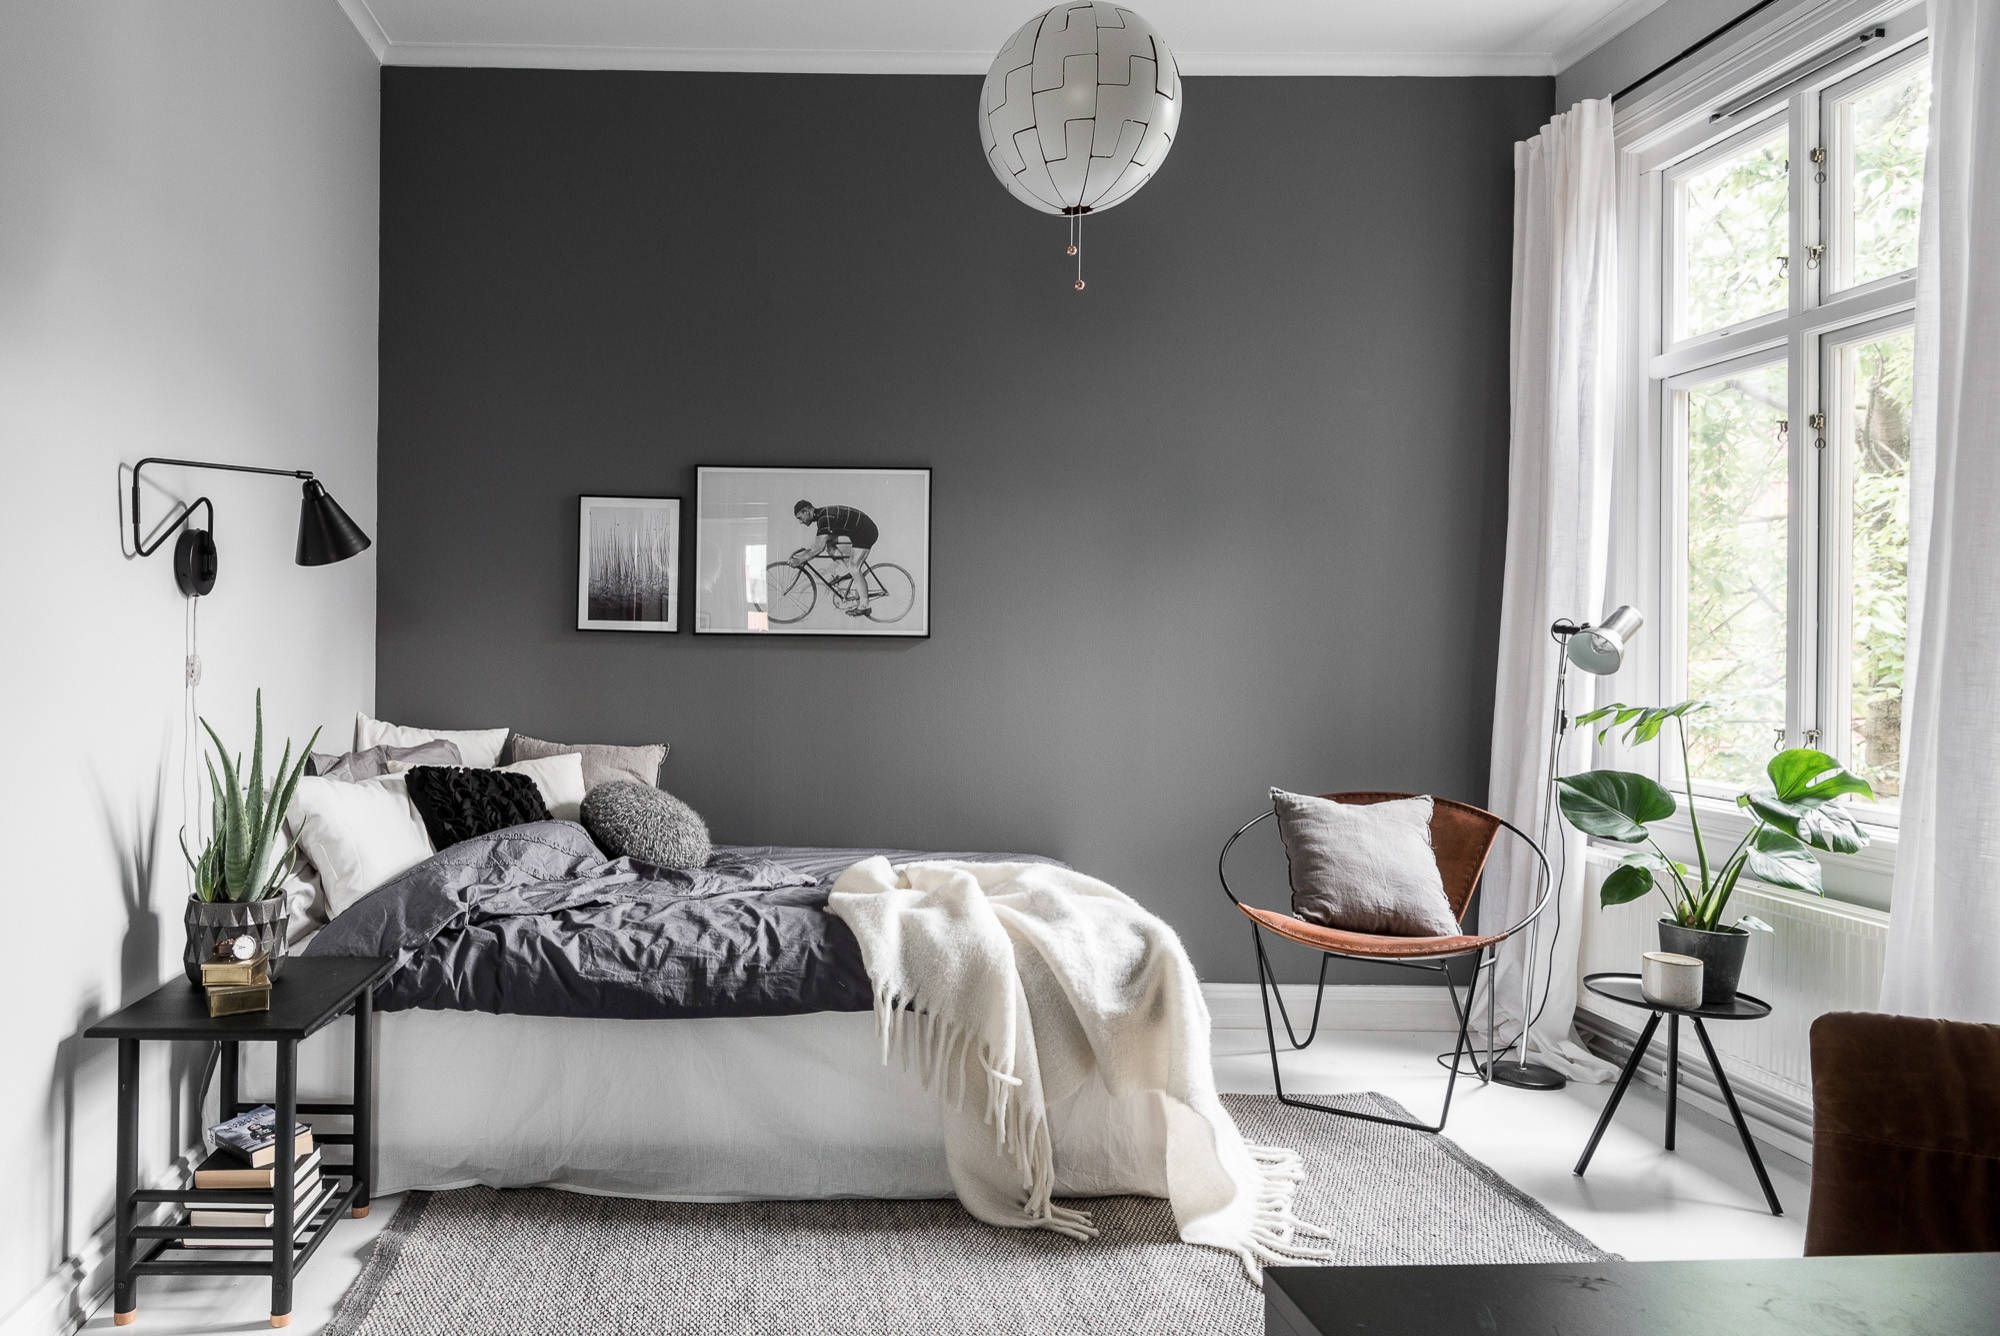 38 Contemporary Bedroom Design Ideas Grey Bedroom Design Grey Bedroom Decor Bedroom Interior